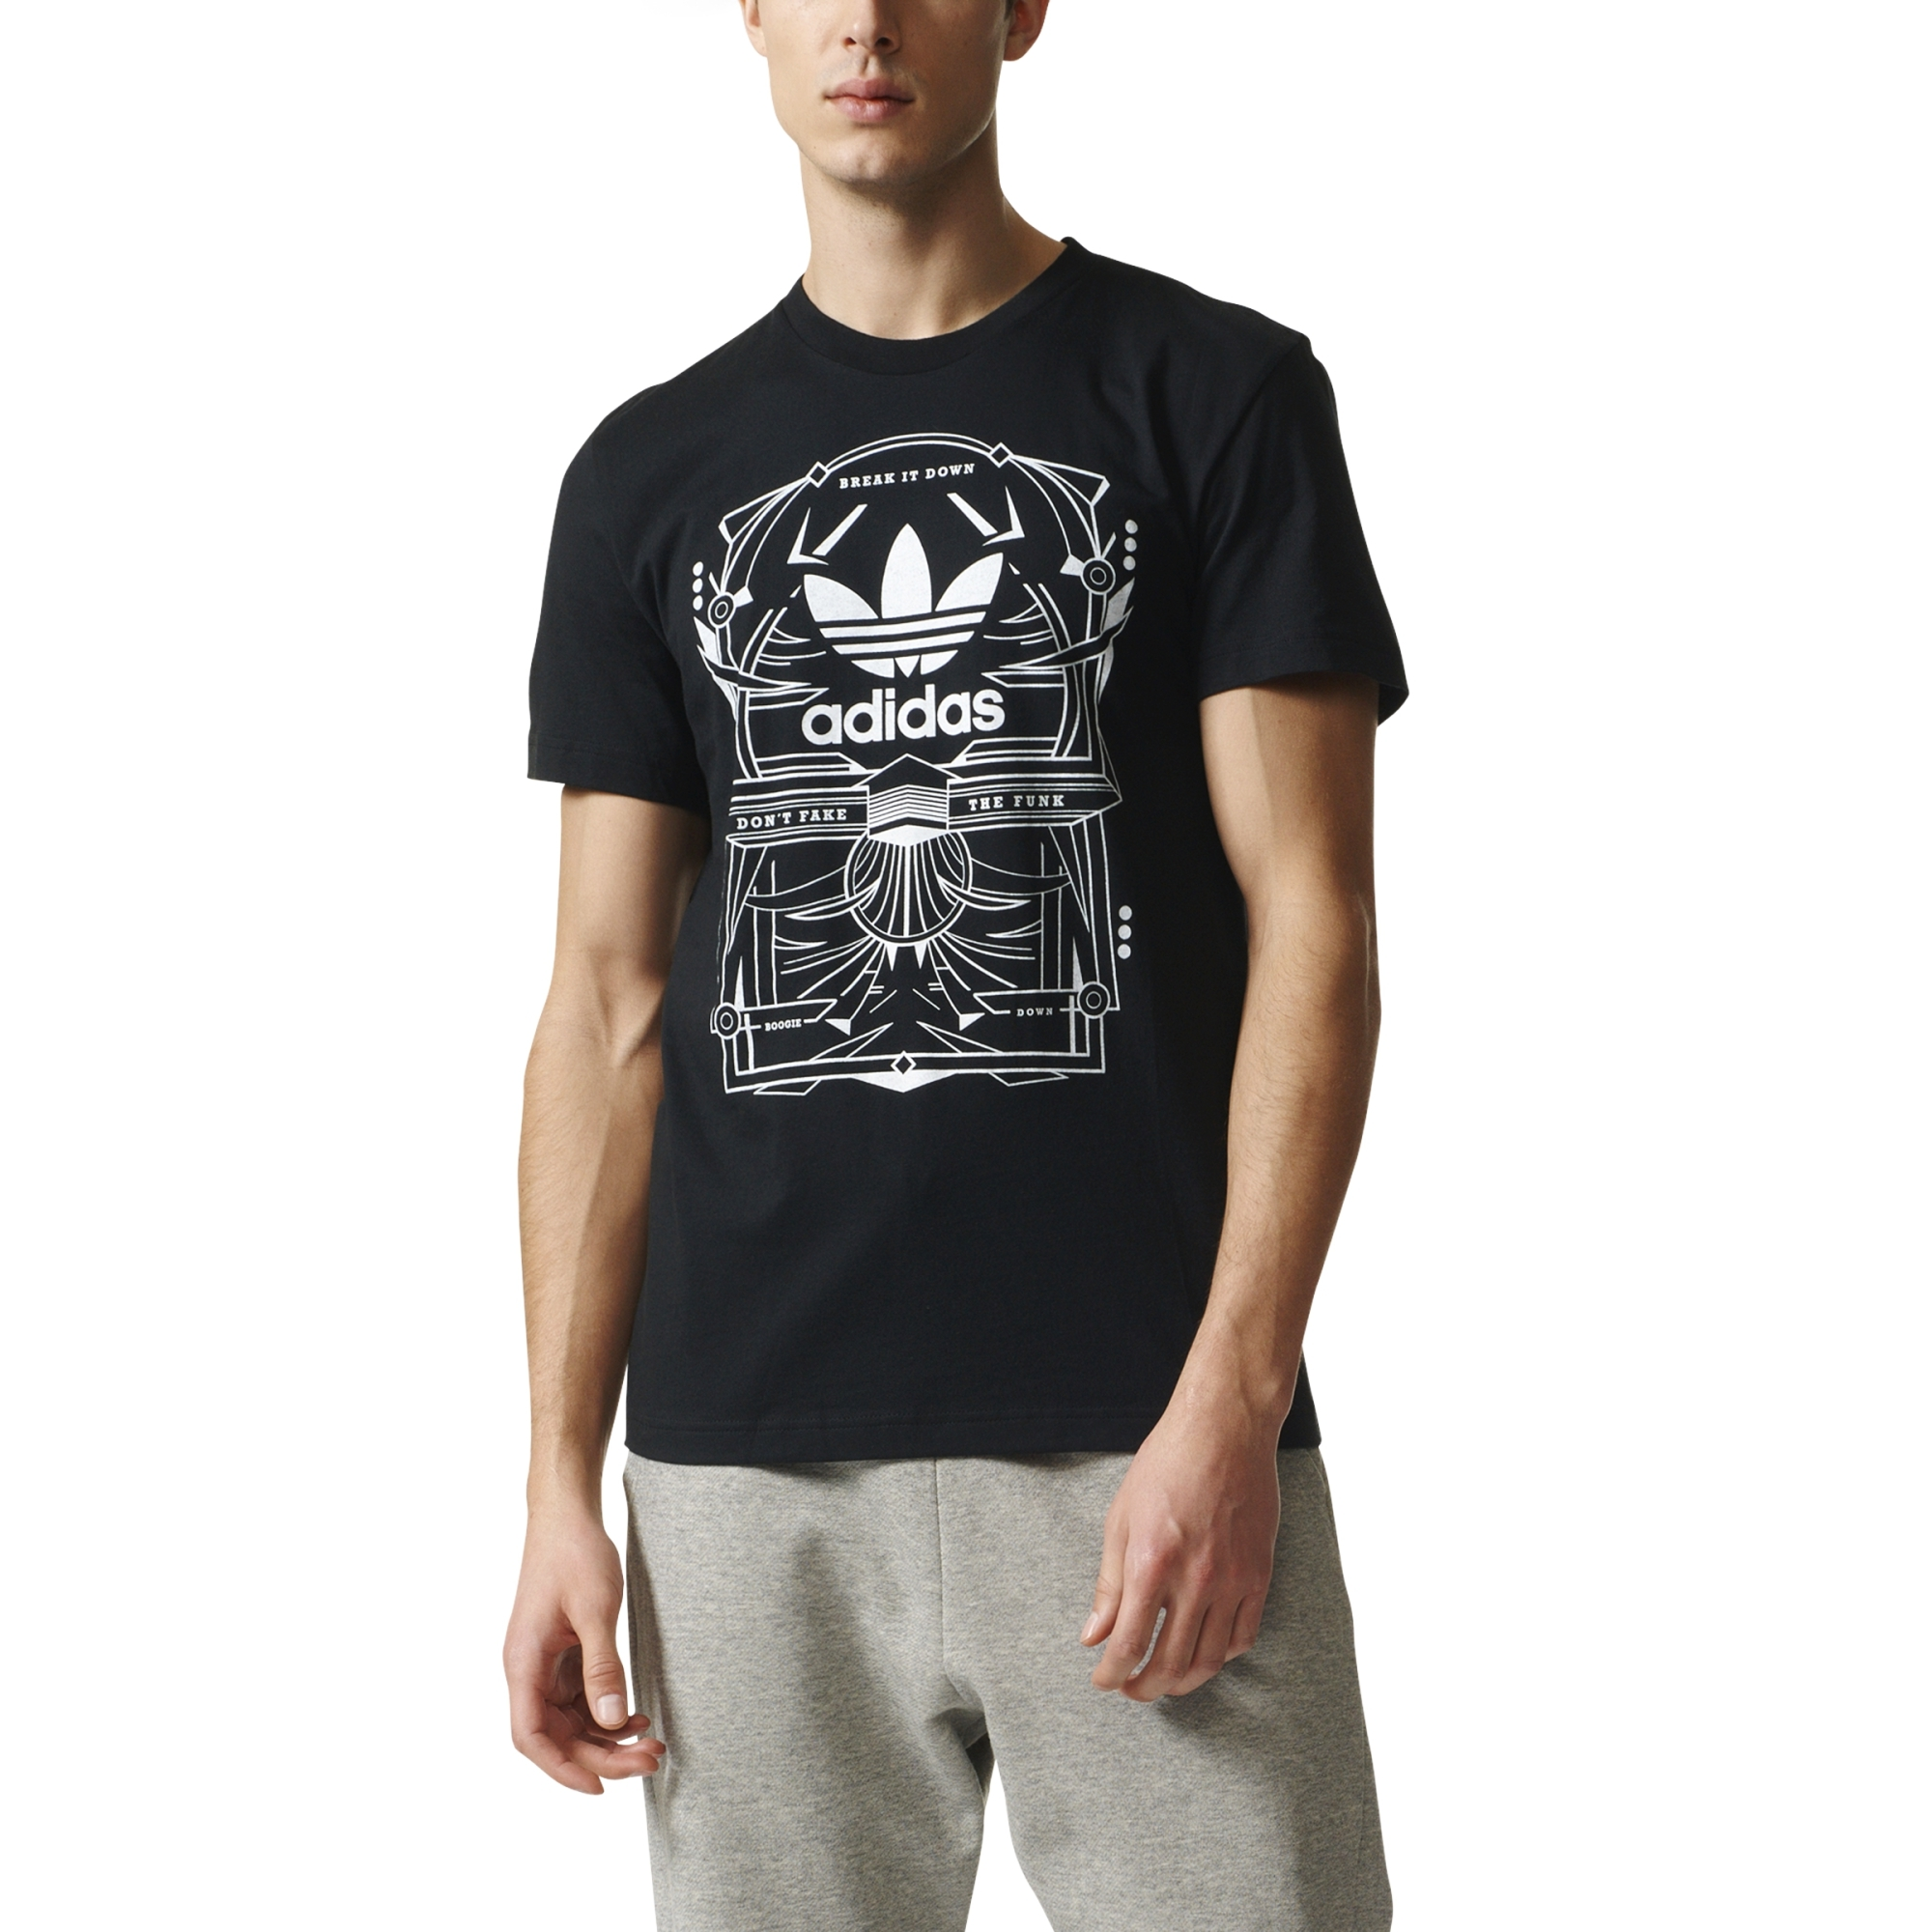 Boogie Rectangle Down black Tee 3 Originals Adidas qISwUgq